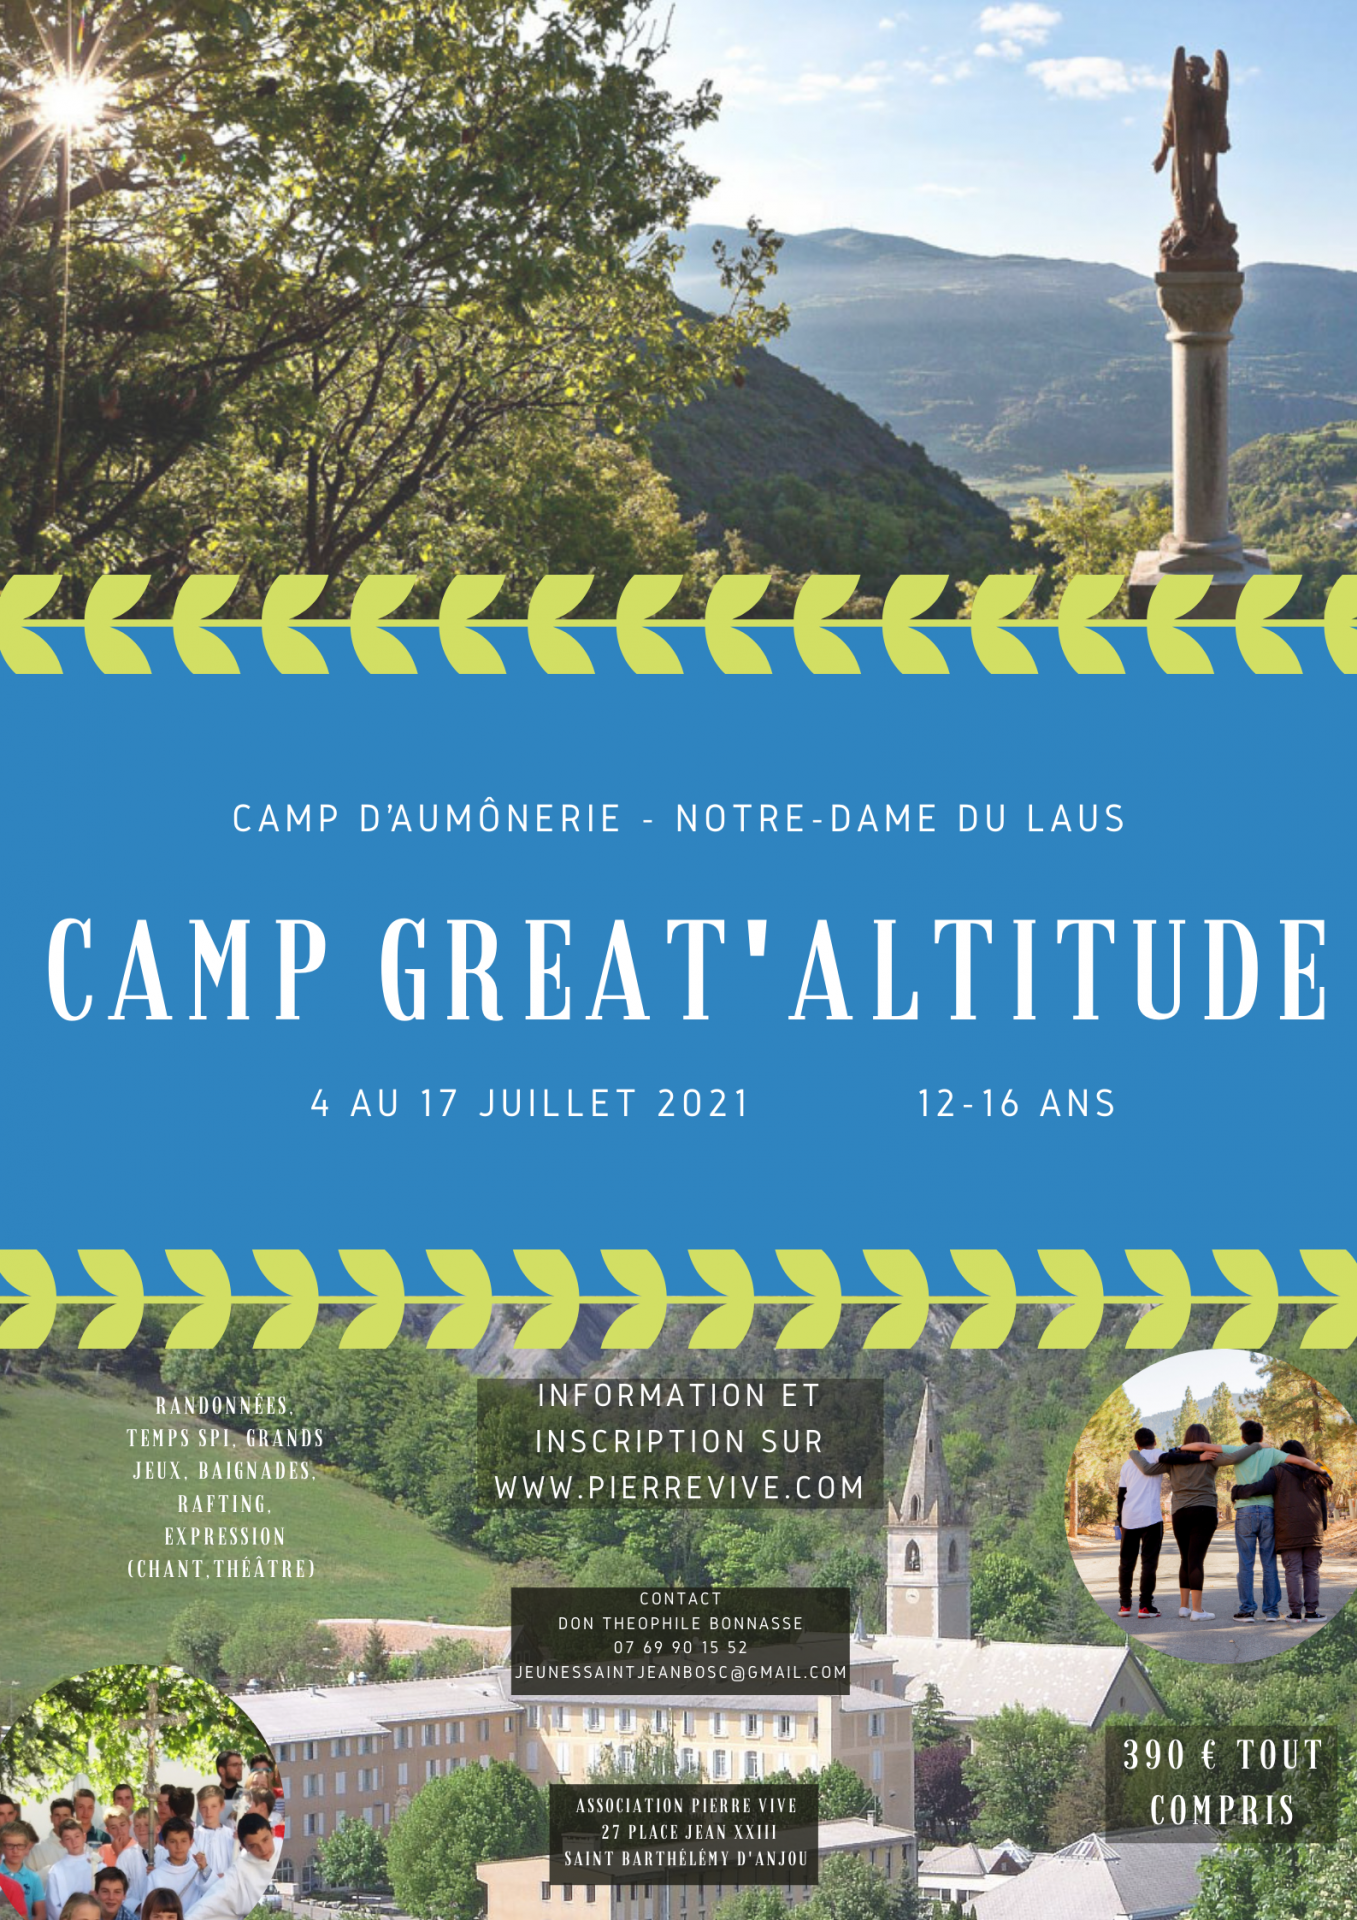 Camp great altitude